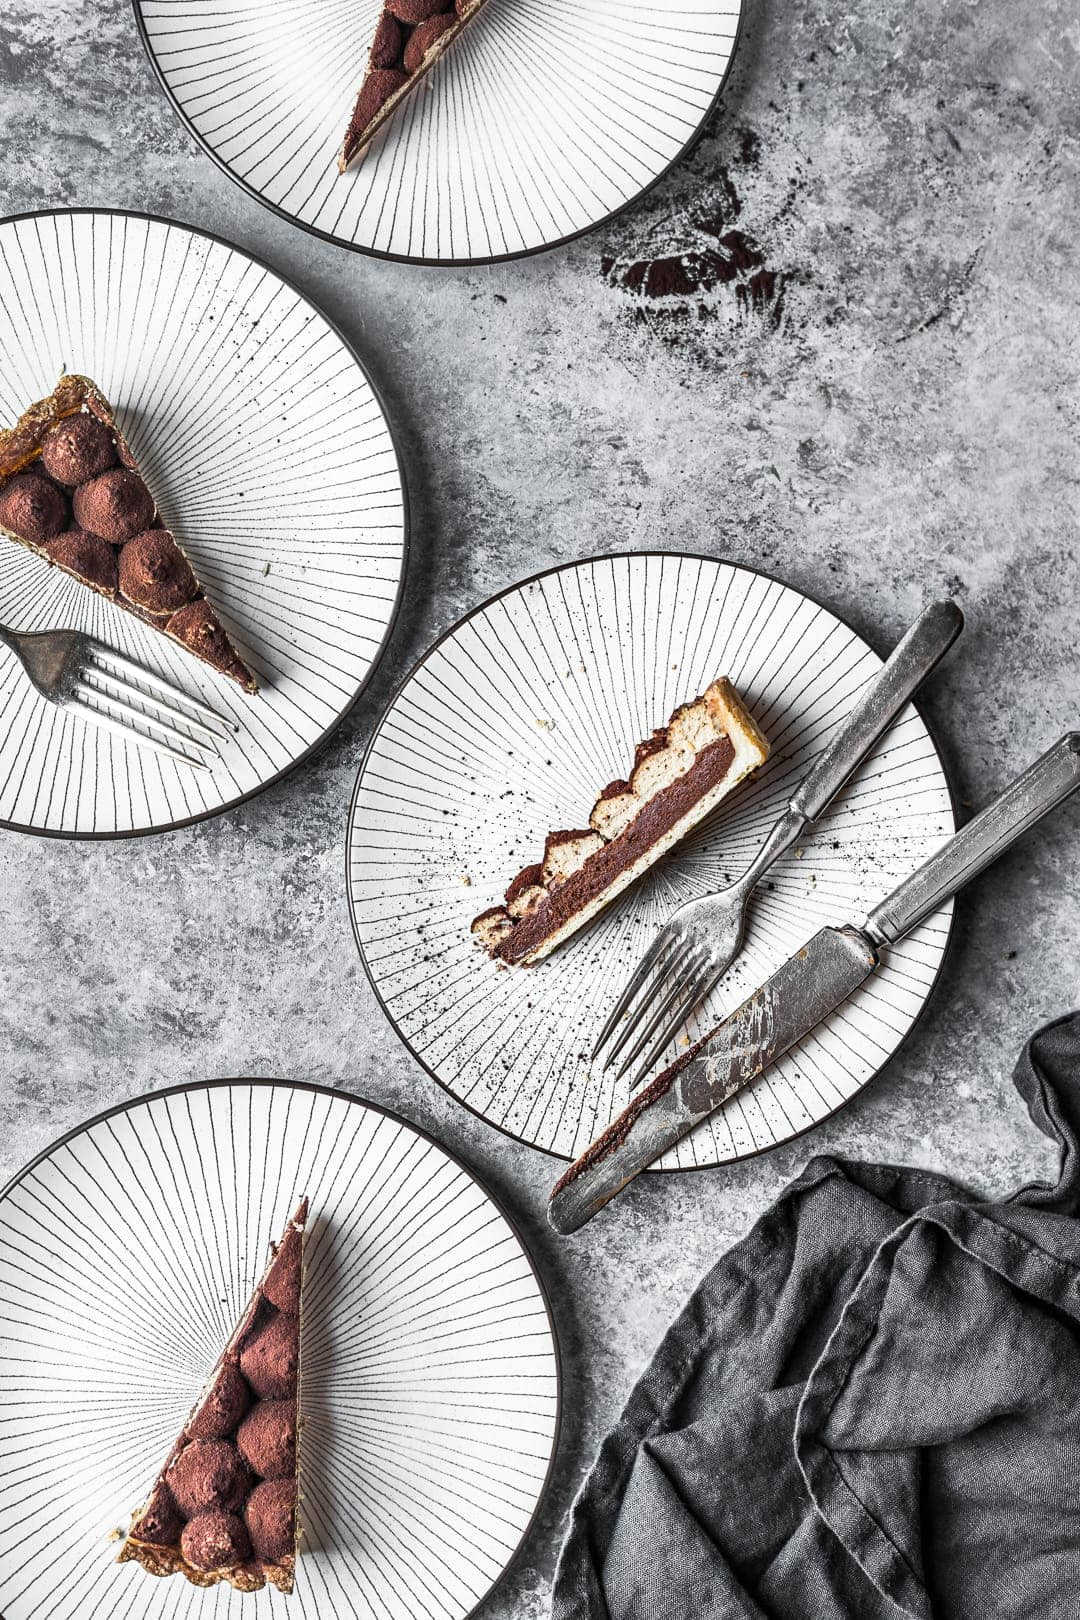 Sliced chocolate coffee mascarpone tart on plates with grey background behind